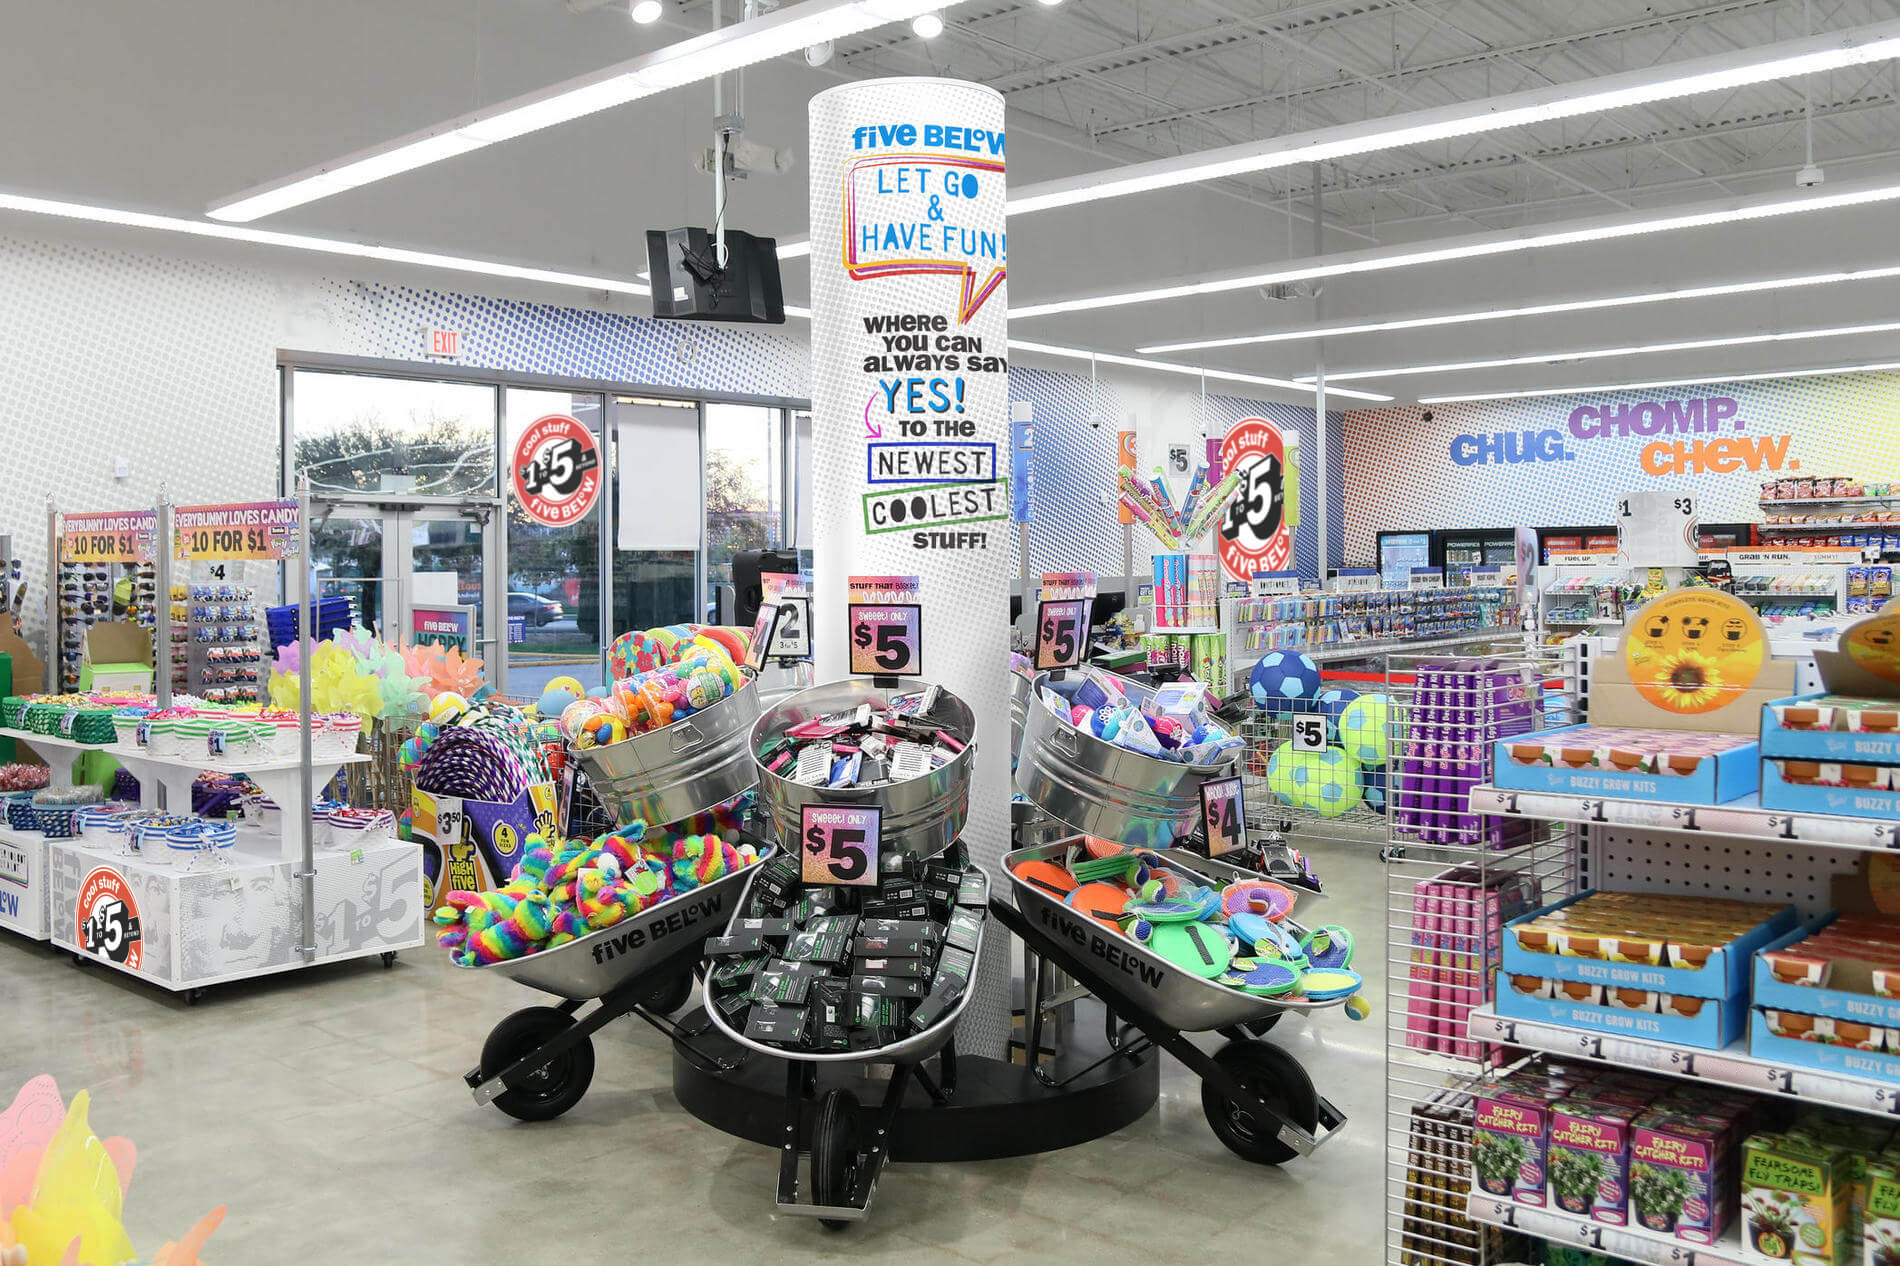 Image shows inside of a five below store.